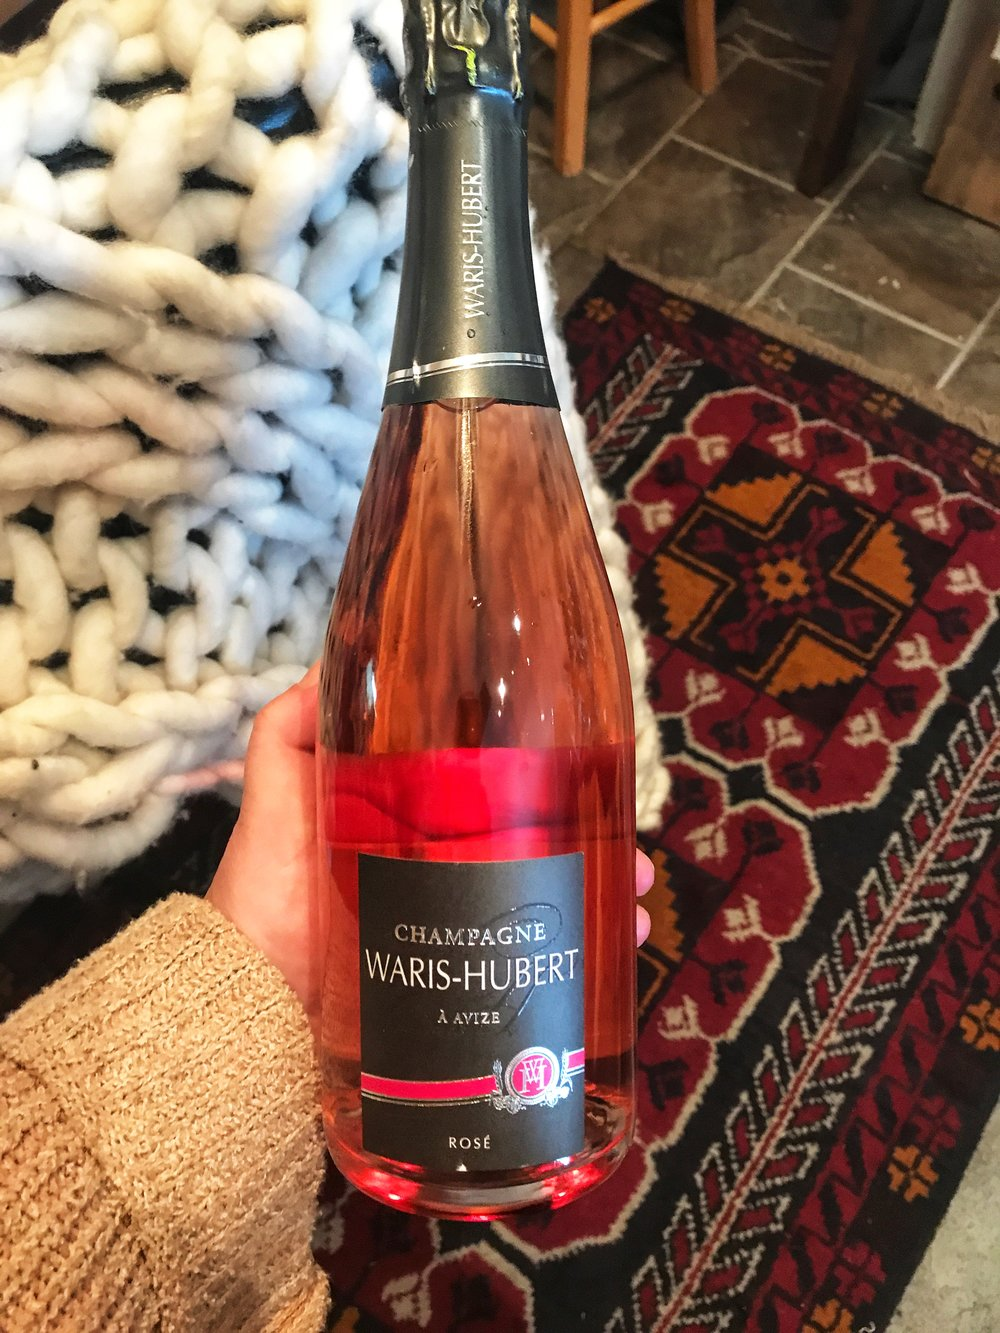 Champagne Waris-Hubert Brut Rosé: (Reg. 65.99 Sale 59.99)    GRAPES / SOILS Chardonnay (85%), Pinot Noir (15%) THE WINE Vineyard Profile Village d'Avize for the Chardonnay Pinot Noir de Bouzy for the Rouge Wine Summary Made from Chardonnay (85%), Pinot Noir (15%) grapes. Fermented in stainless steel vats at 16°C. Aged in in bottle at 11°C. Aged for 18 months. Technical Information 85% Chardonnay from Grauves, 15% Pinot Noir (Bouzy red wine) 100% cuvée (first press juice) Cold settling at 4°C for 72 hours, then alcoholic fermentation at 16°C. Vinification in stainless steel vats. Cellar aging for approximately 18 months at a constant temperature of 11°C. Dosage: 7 g/l.